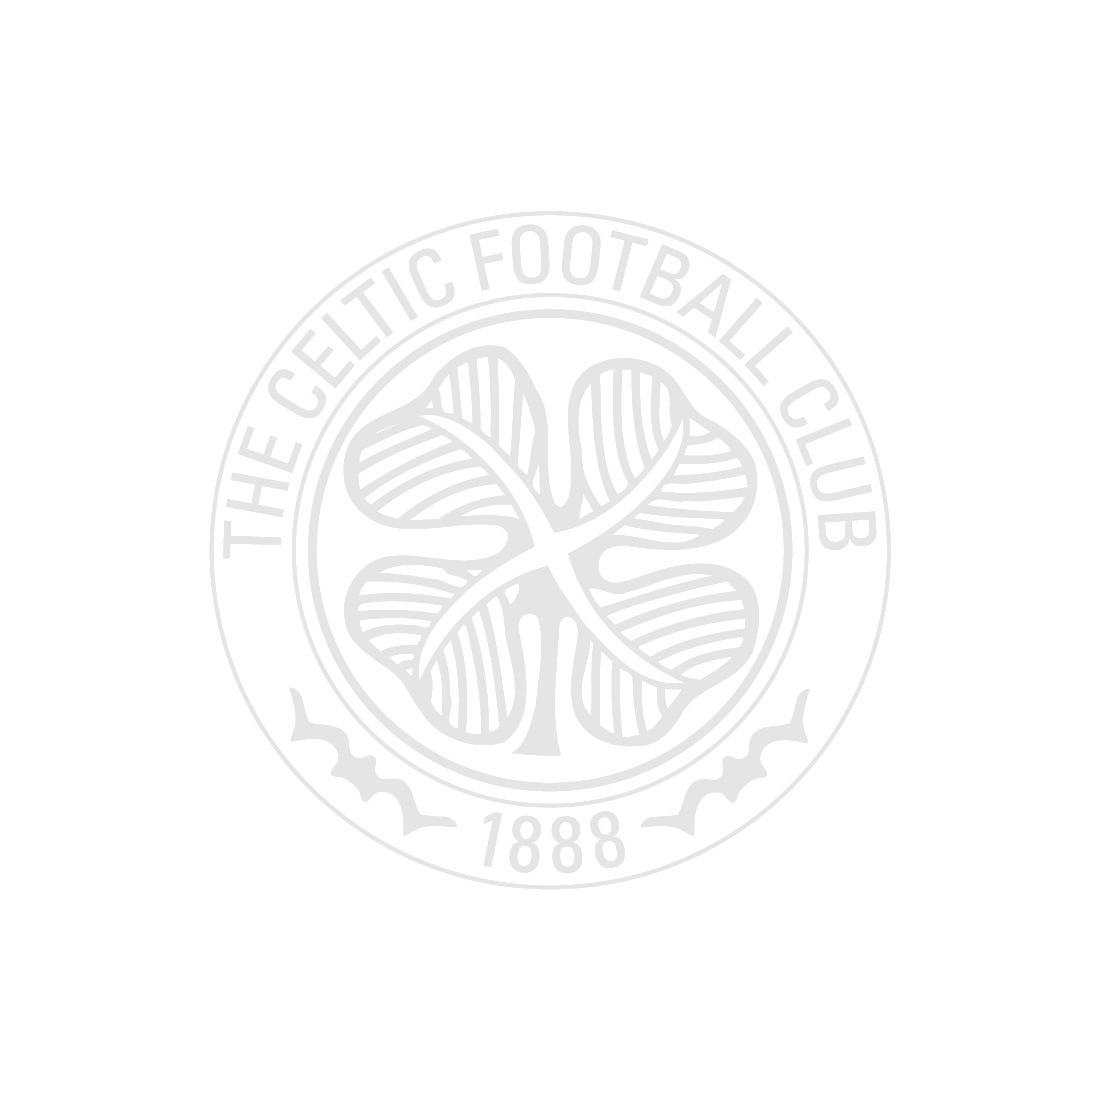 Celtic Junior Champions Green 9 in a row T-shirt